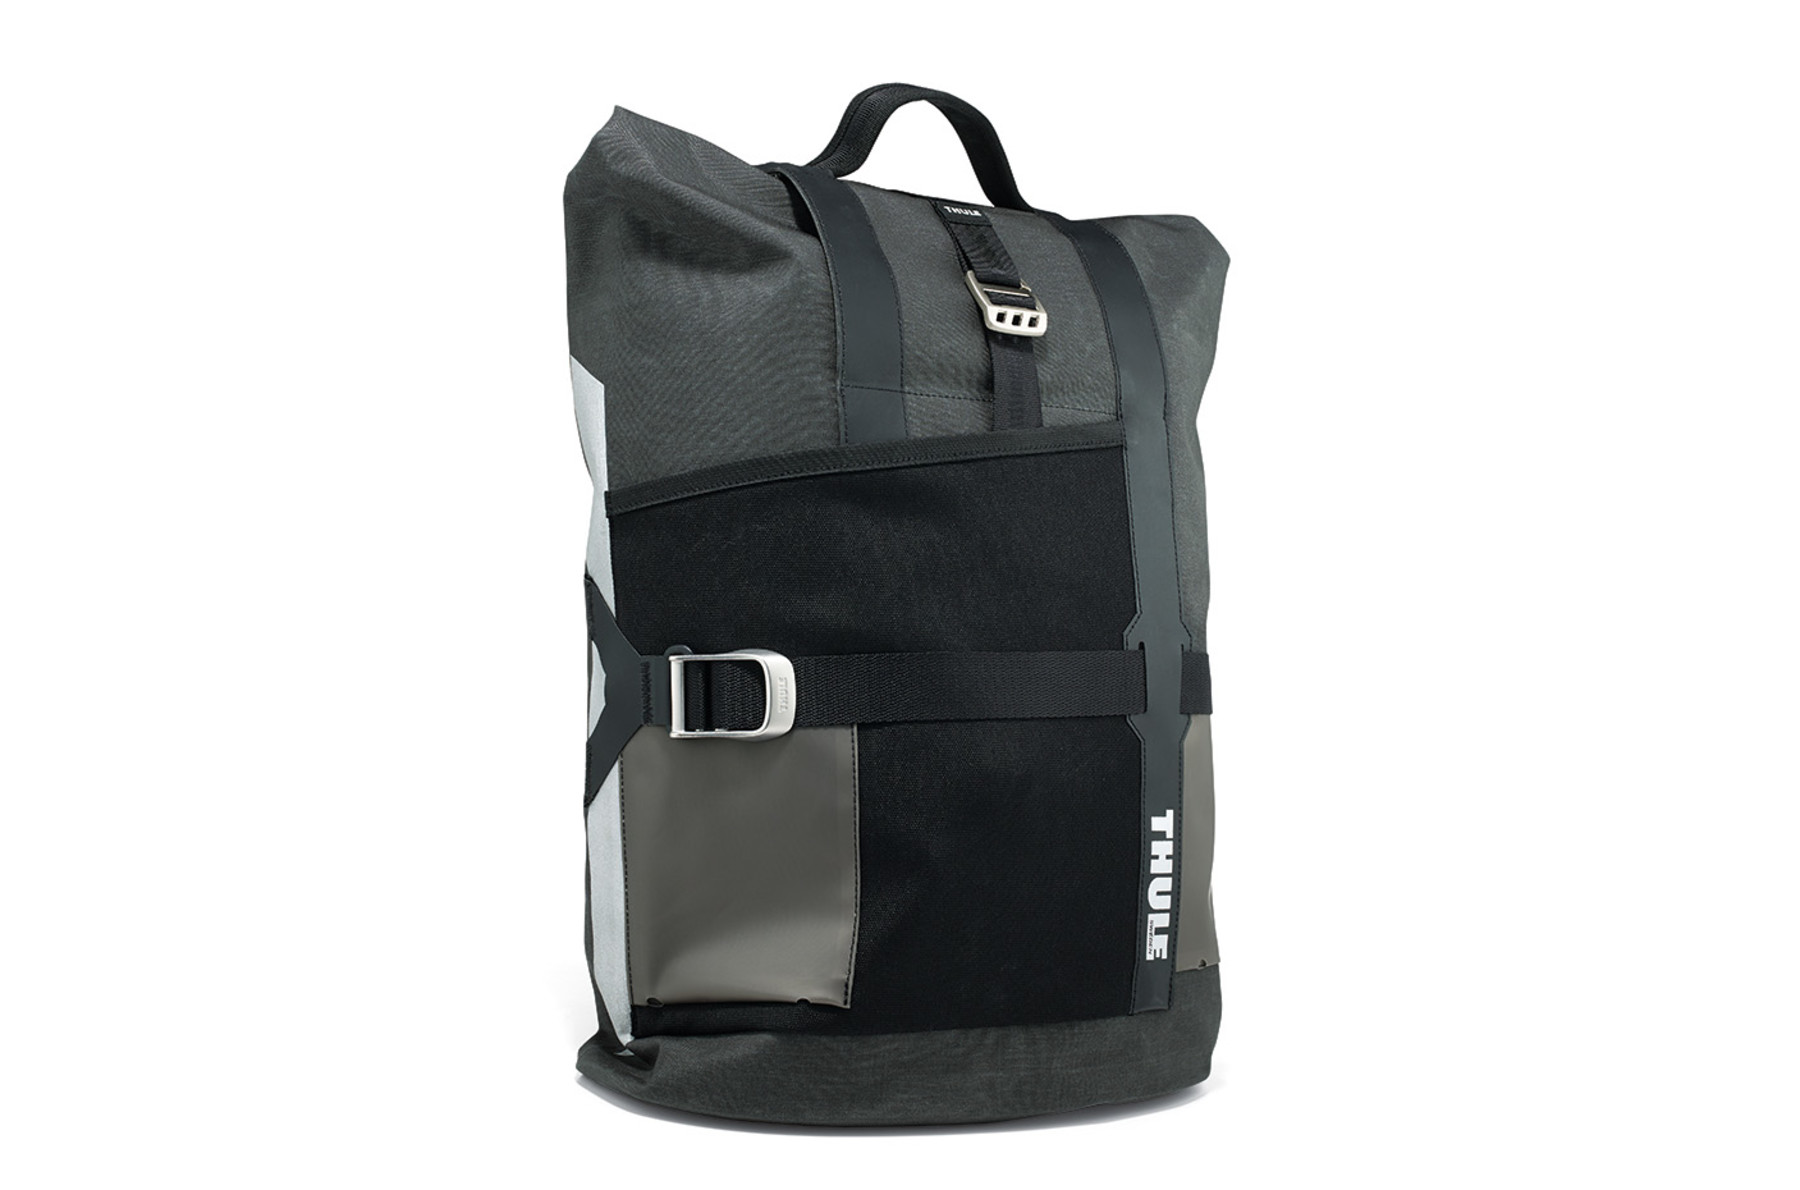 Panniers and bike bags-Thule Pack 'n Pedal Commuter Pannier